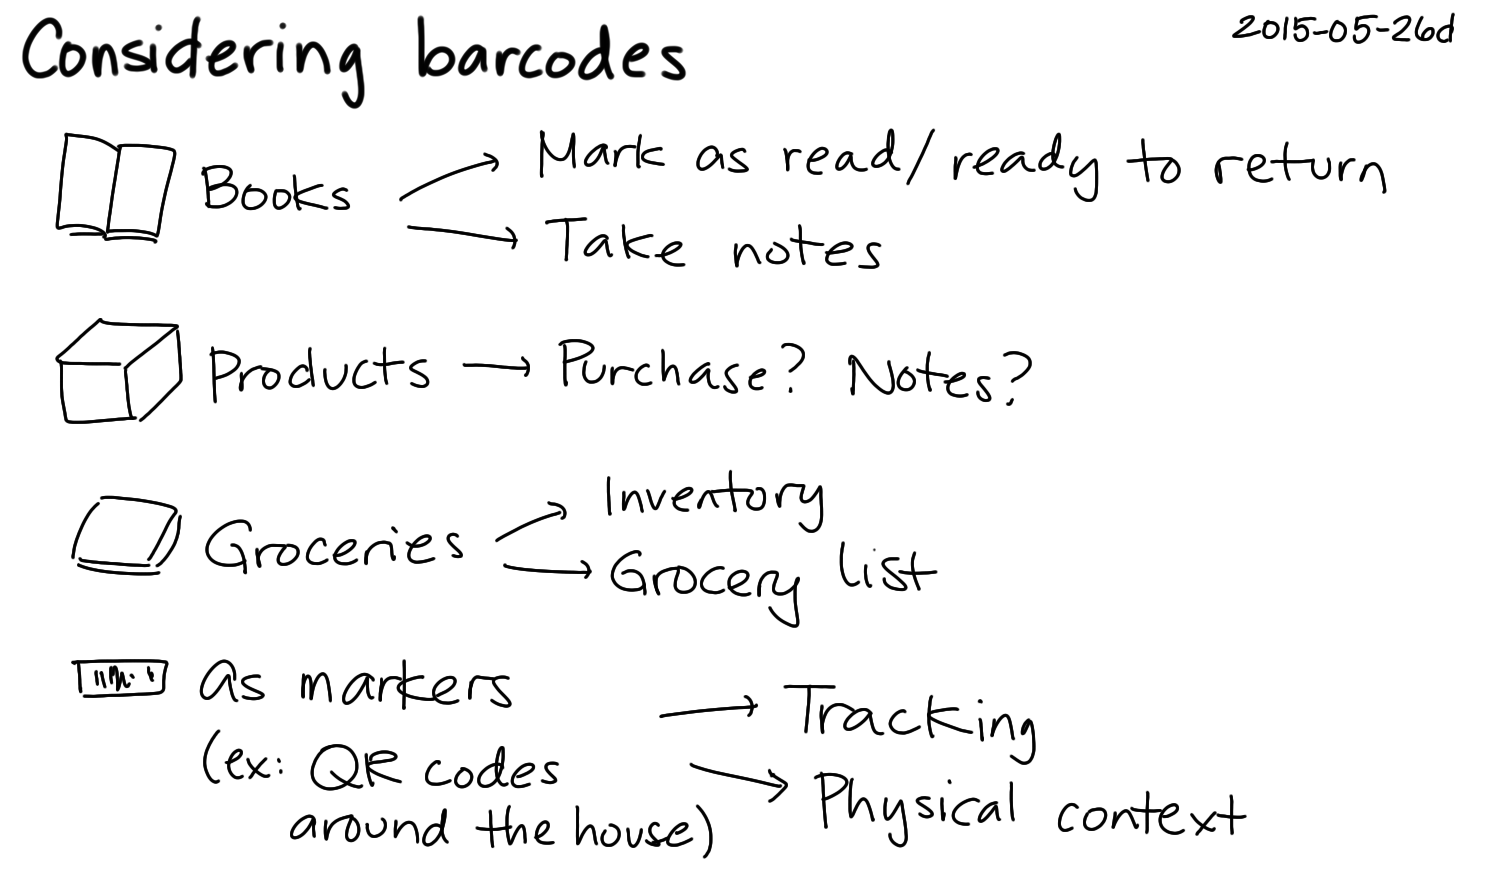 2015-05-26d Considering barcodes -- index card #pda.png